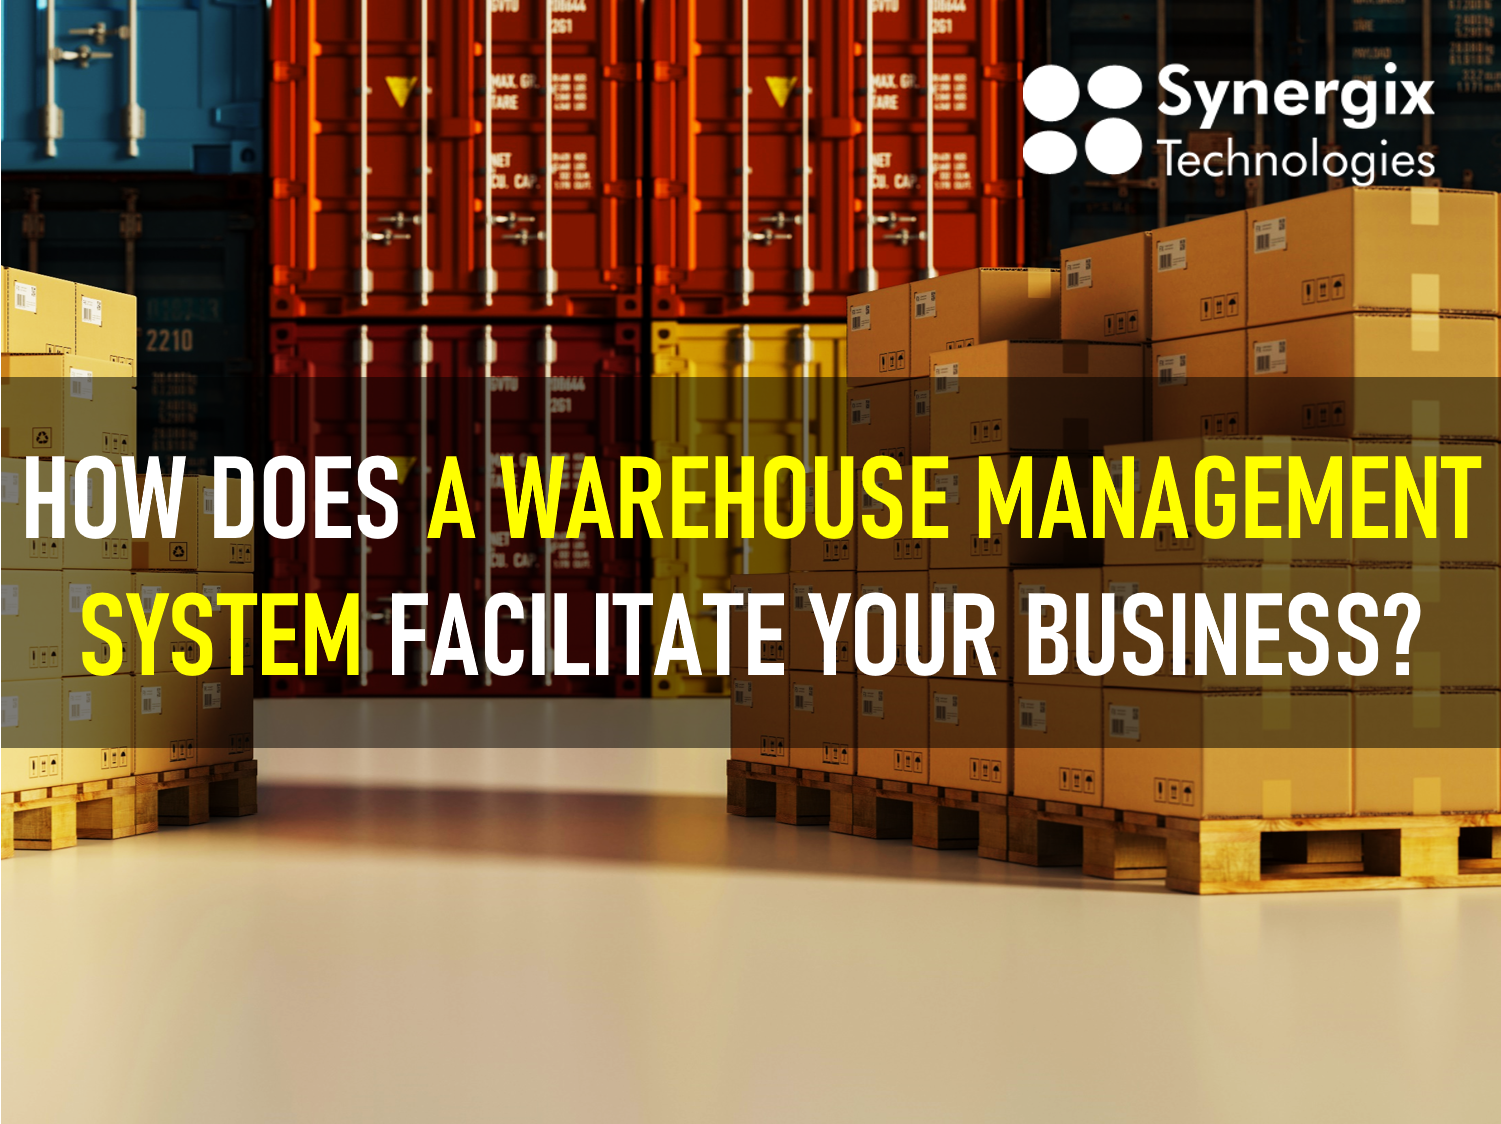 How Does A Warehouse Management System Facilitate Your Business?